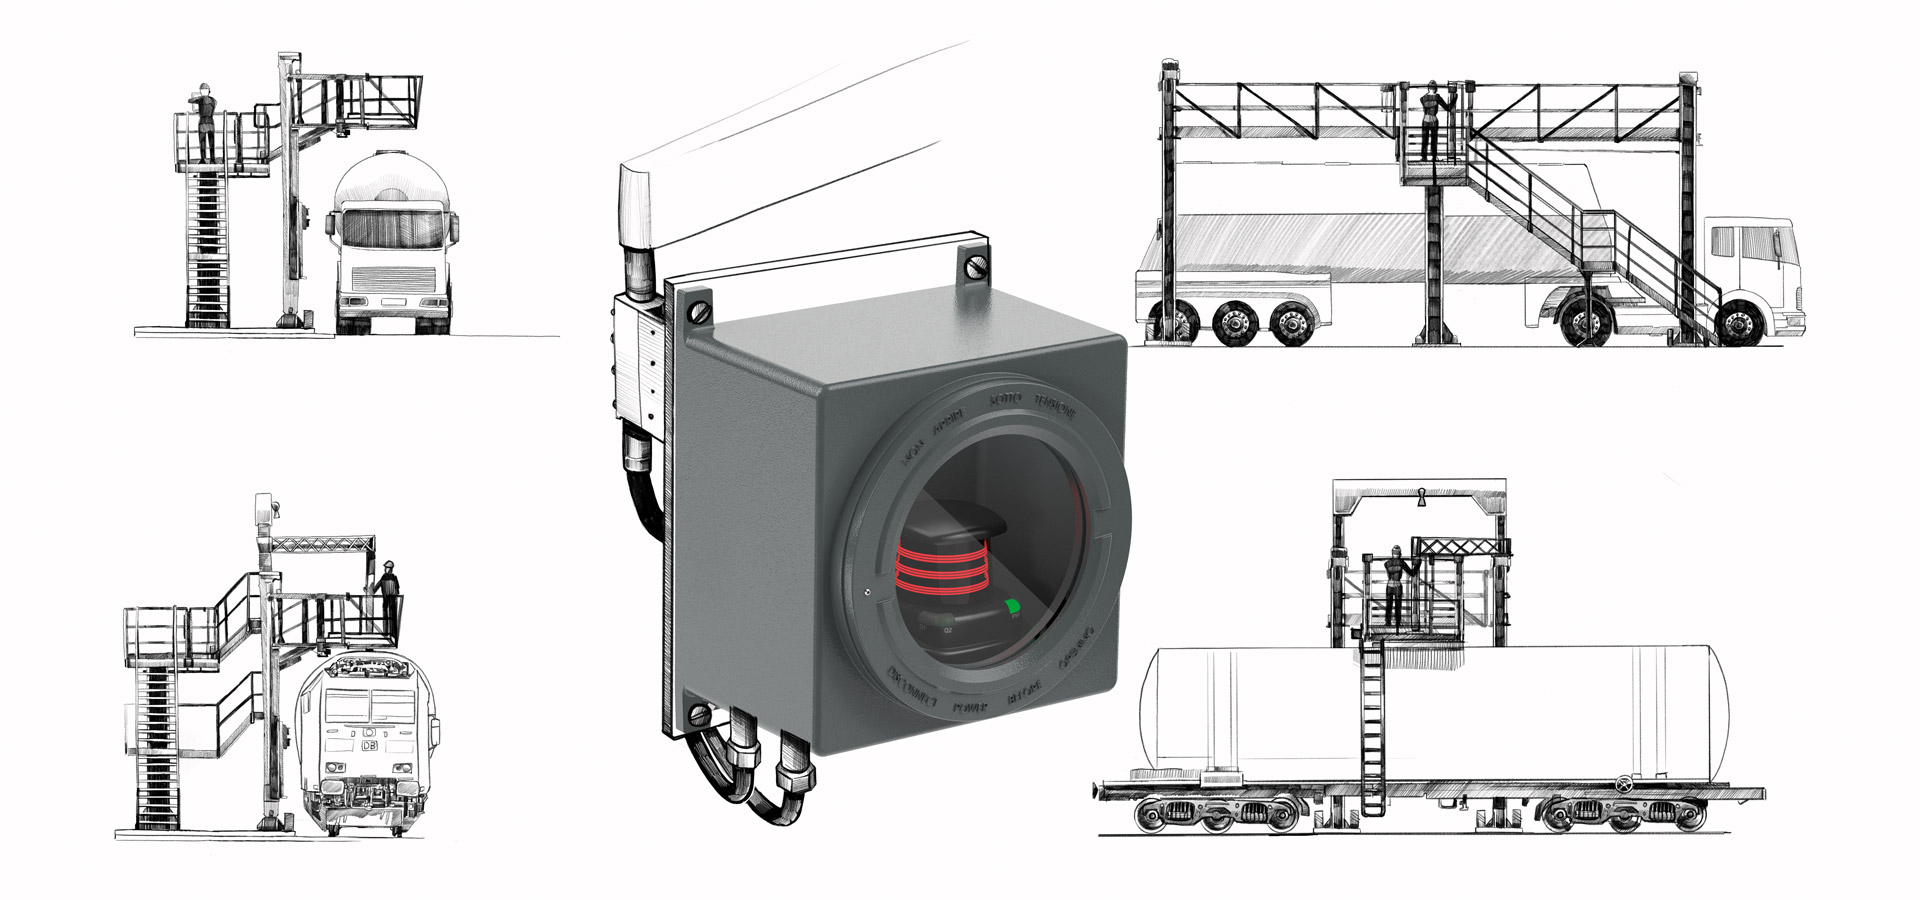 2-D LiDAR sensor for ATEX Zone 1